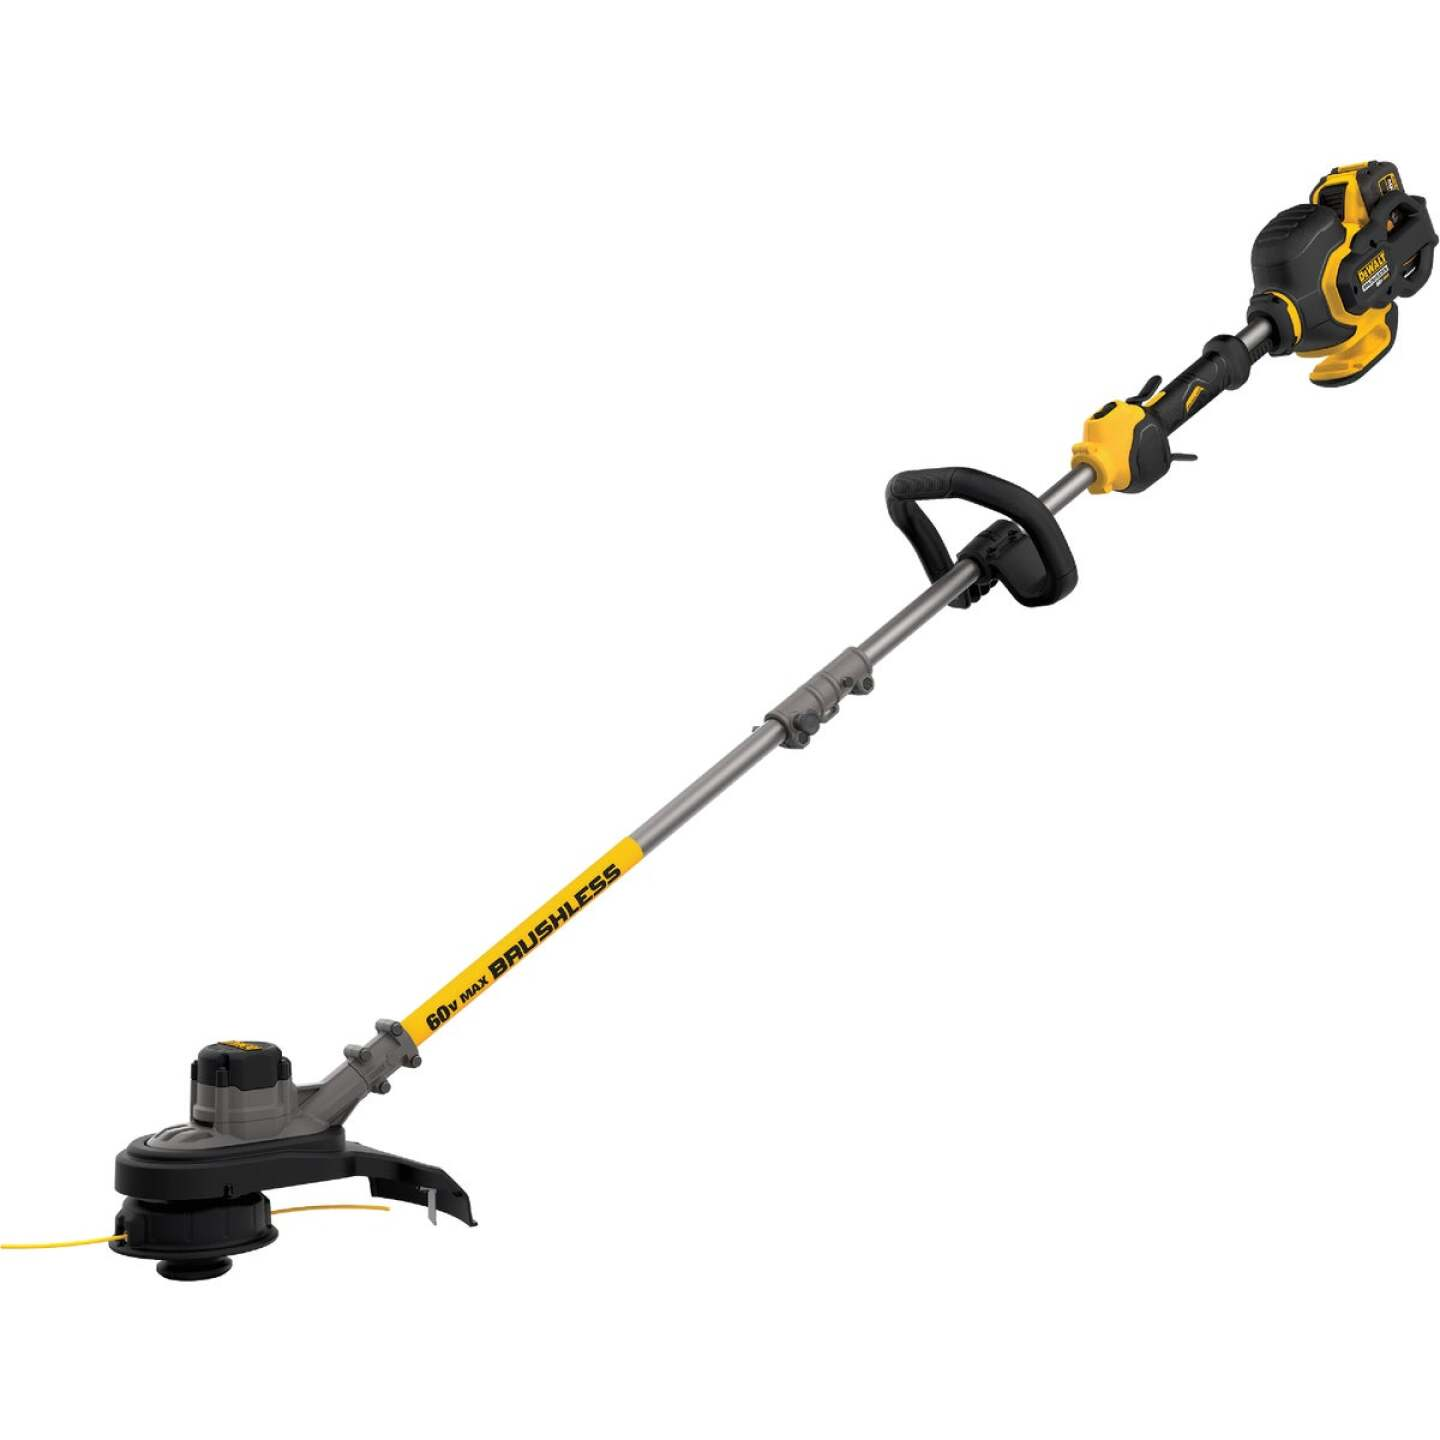 DeWalt Flexvolt 60V Max 15 In. Lithium Ion Straight Cordless String Trimmer Image 1